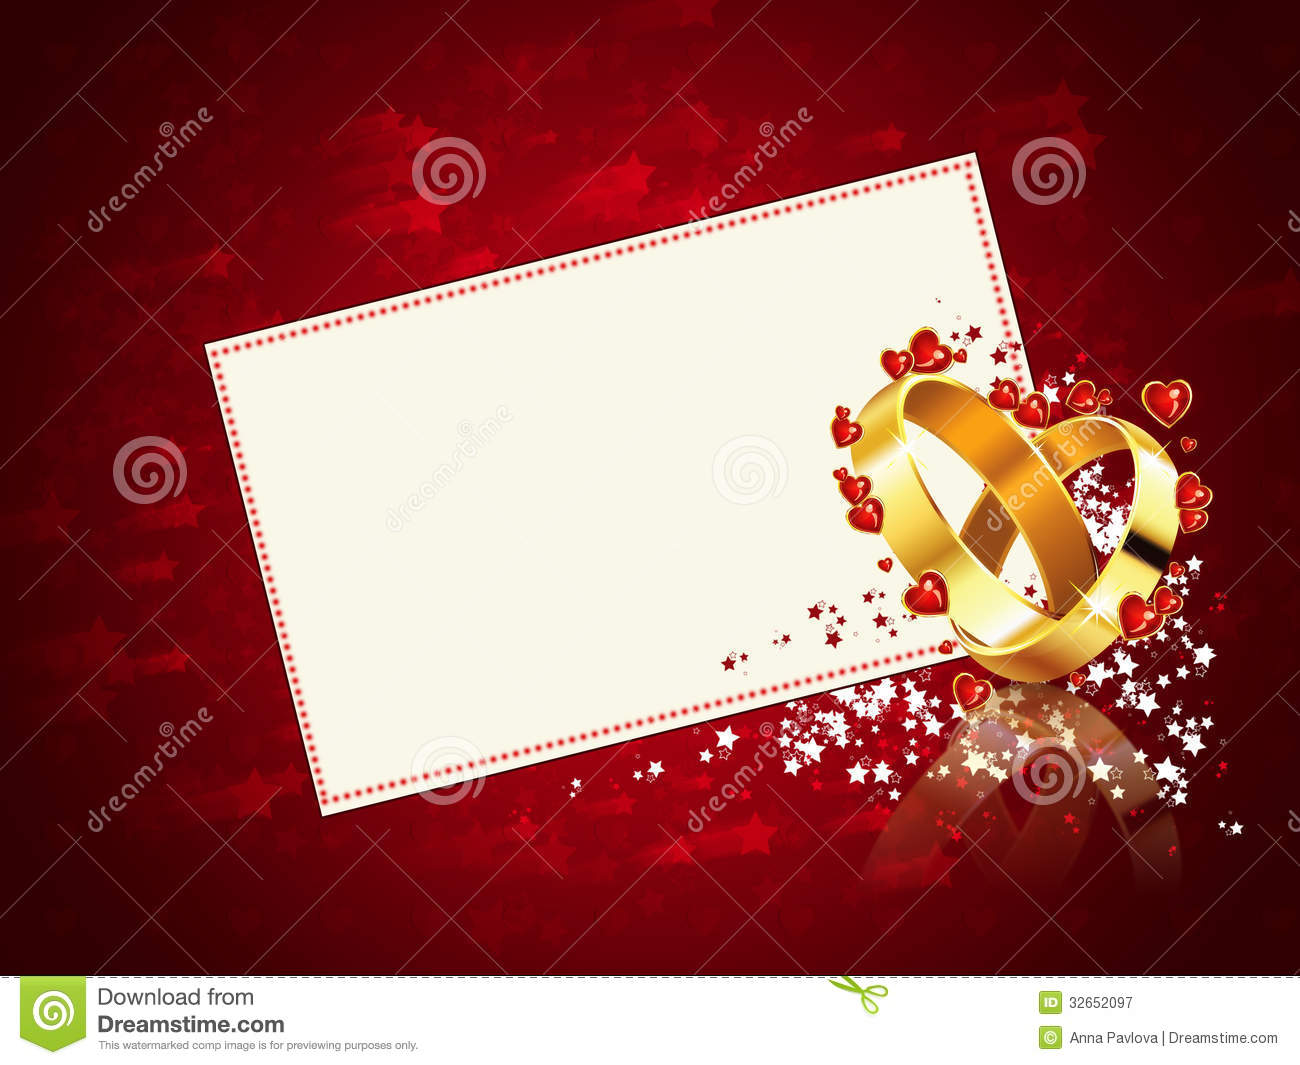 Romantic Wedding Card Royalty Free Stock Photography - Image: 32652097